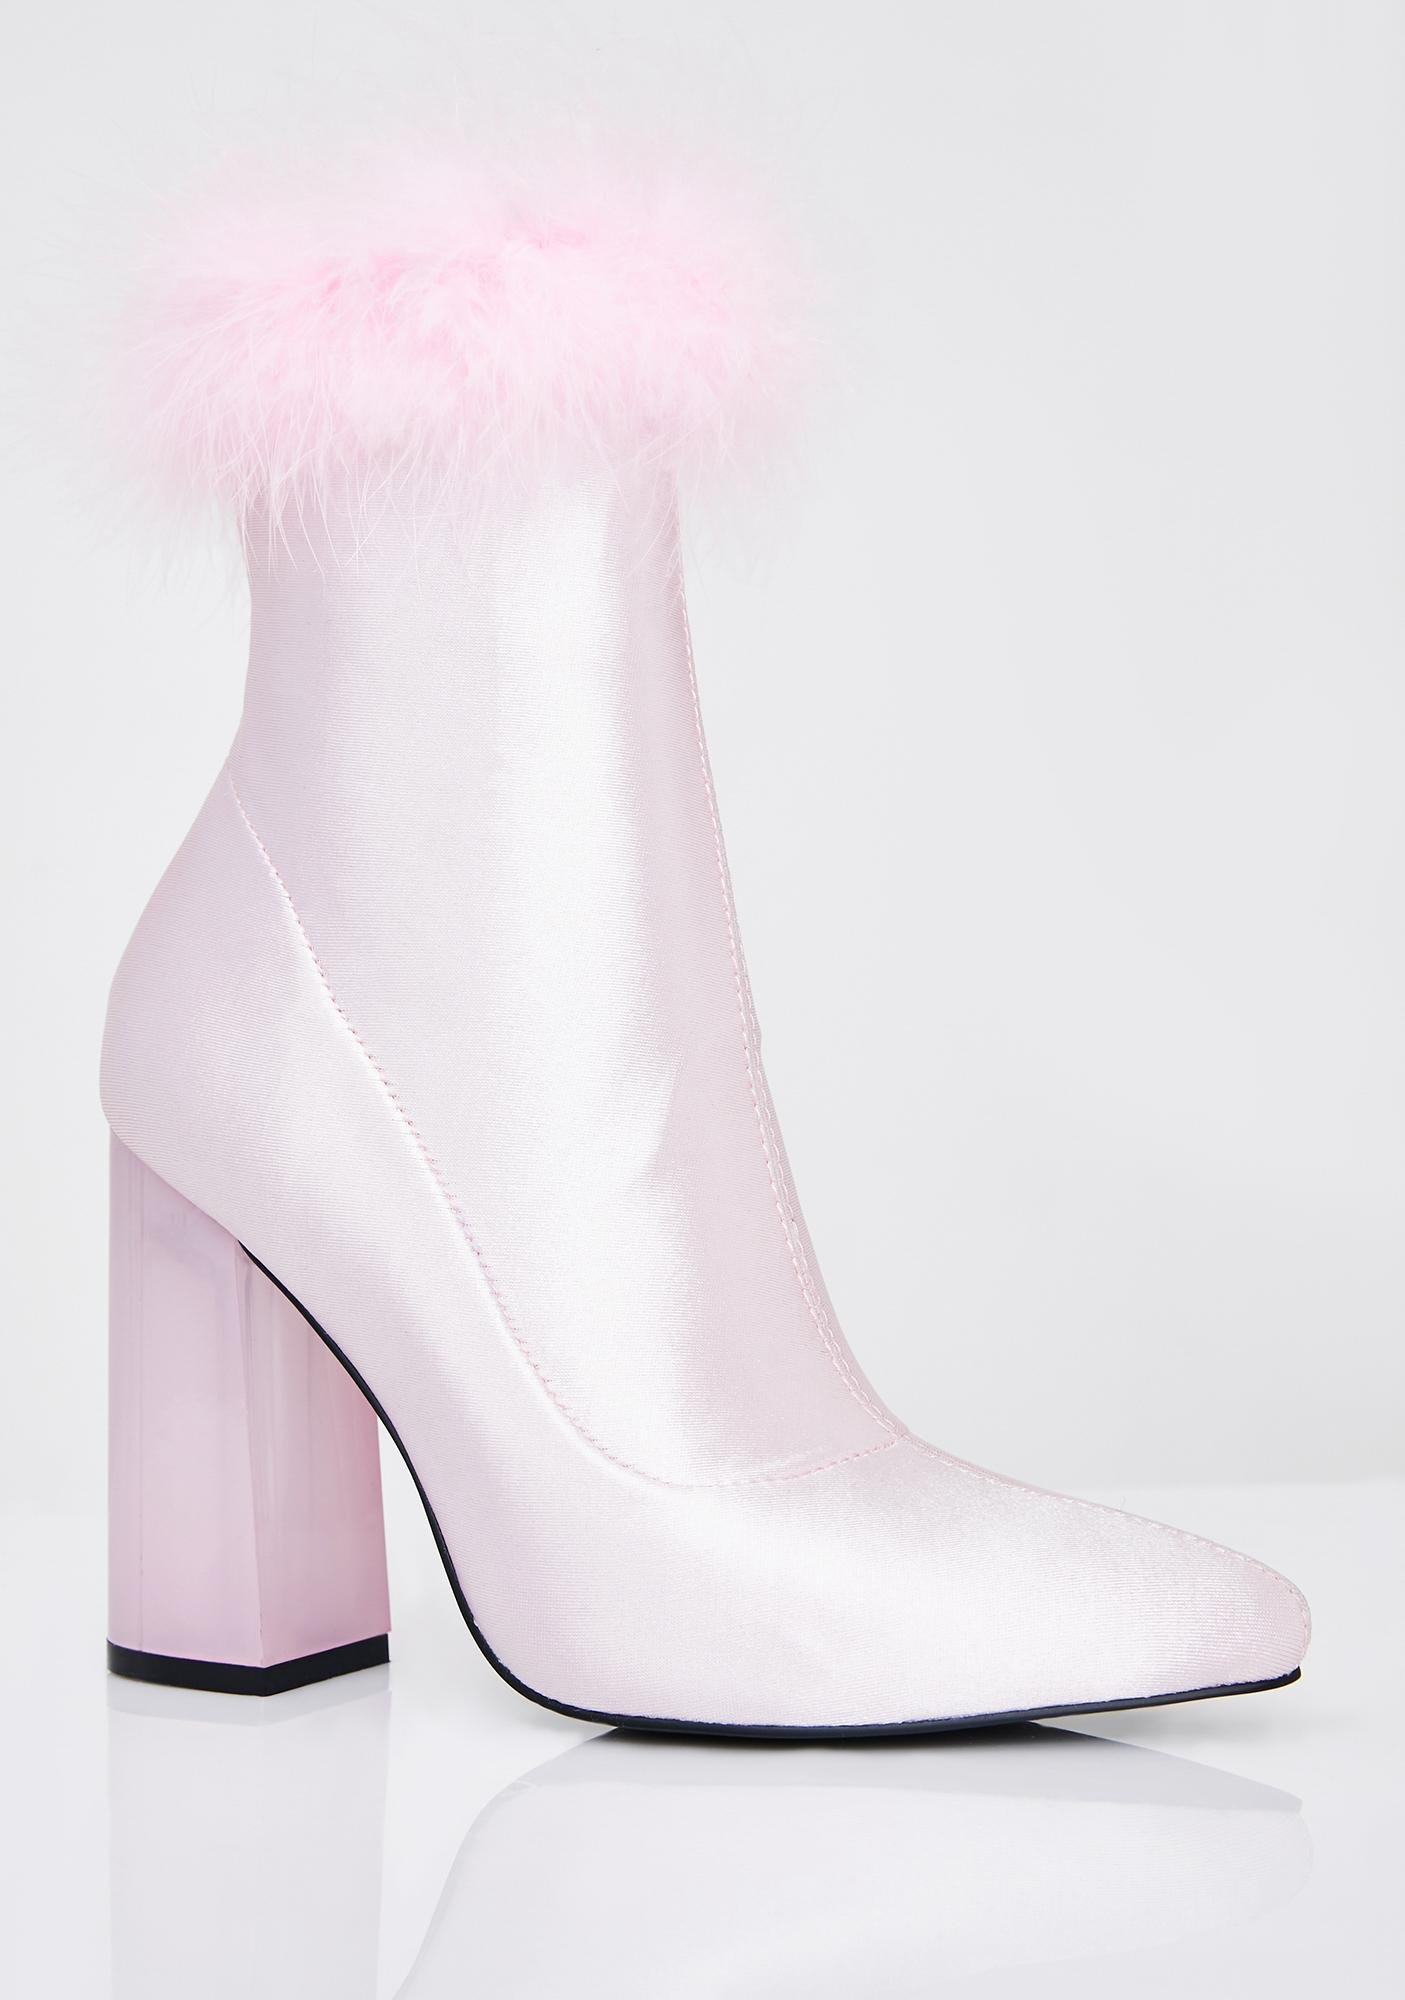 Sugar Thrillz Luv Me Or Hate Me Marabou Boots